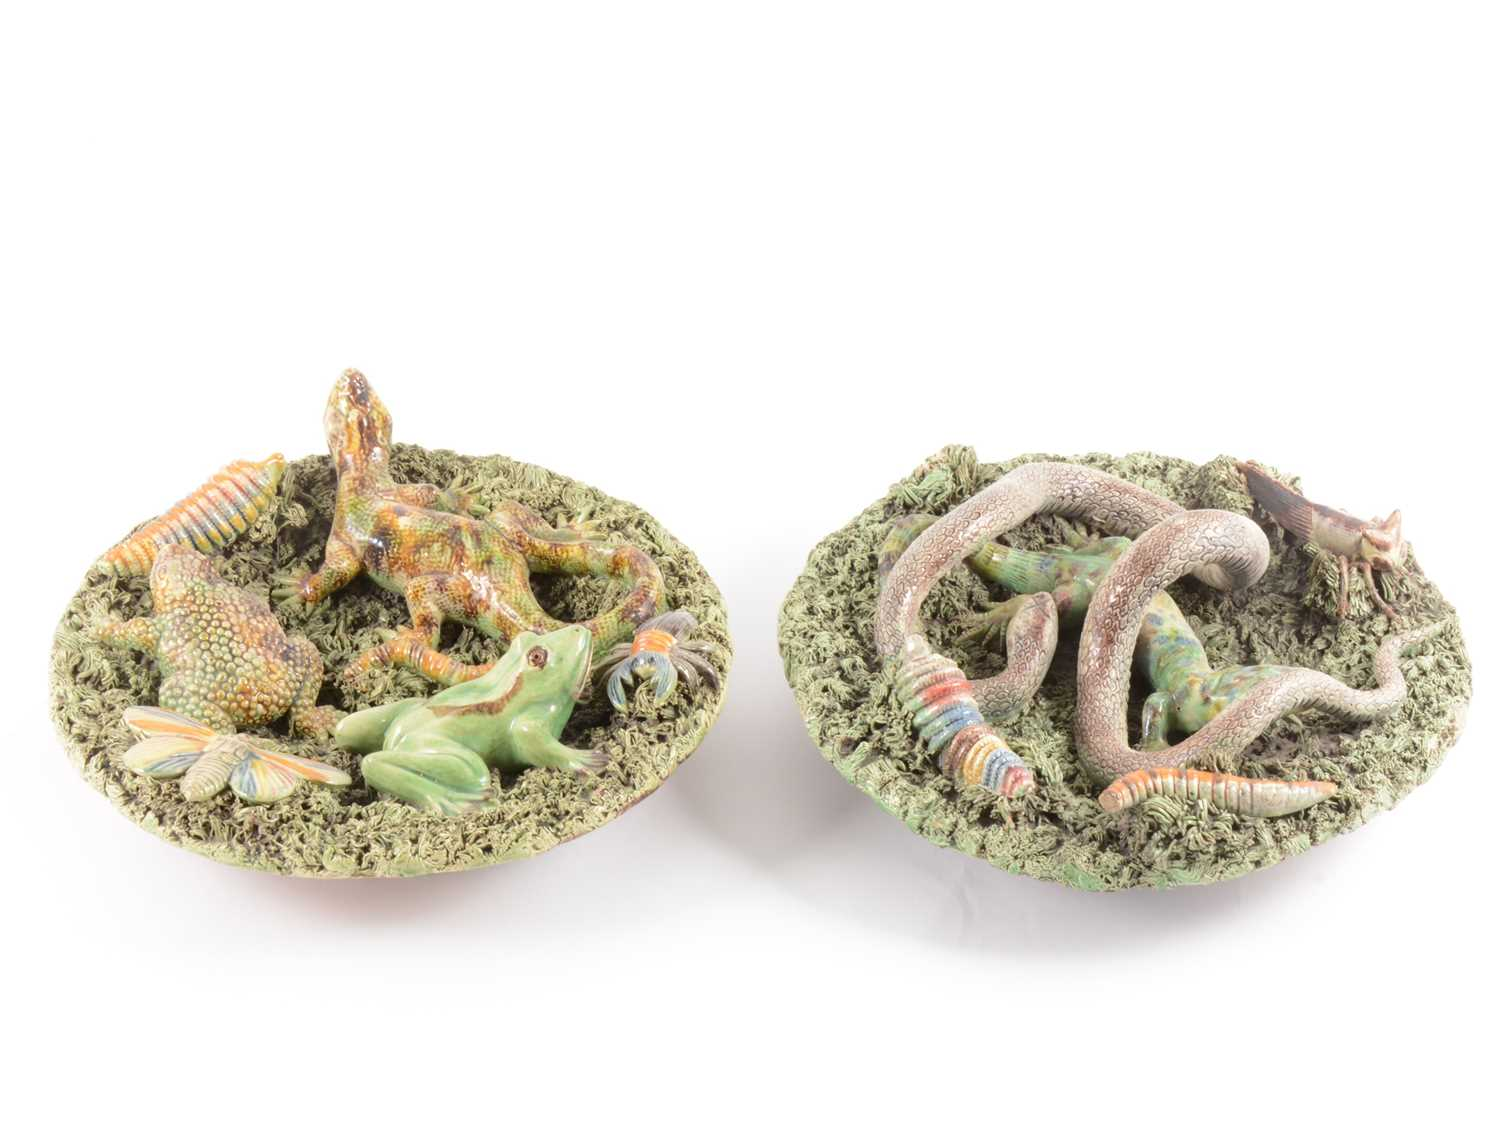 Lot 26-A pair of Portuguese Palissy type lead-glazed earthenware bowls, Jose Alves Cunha